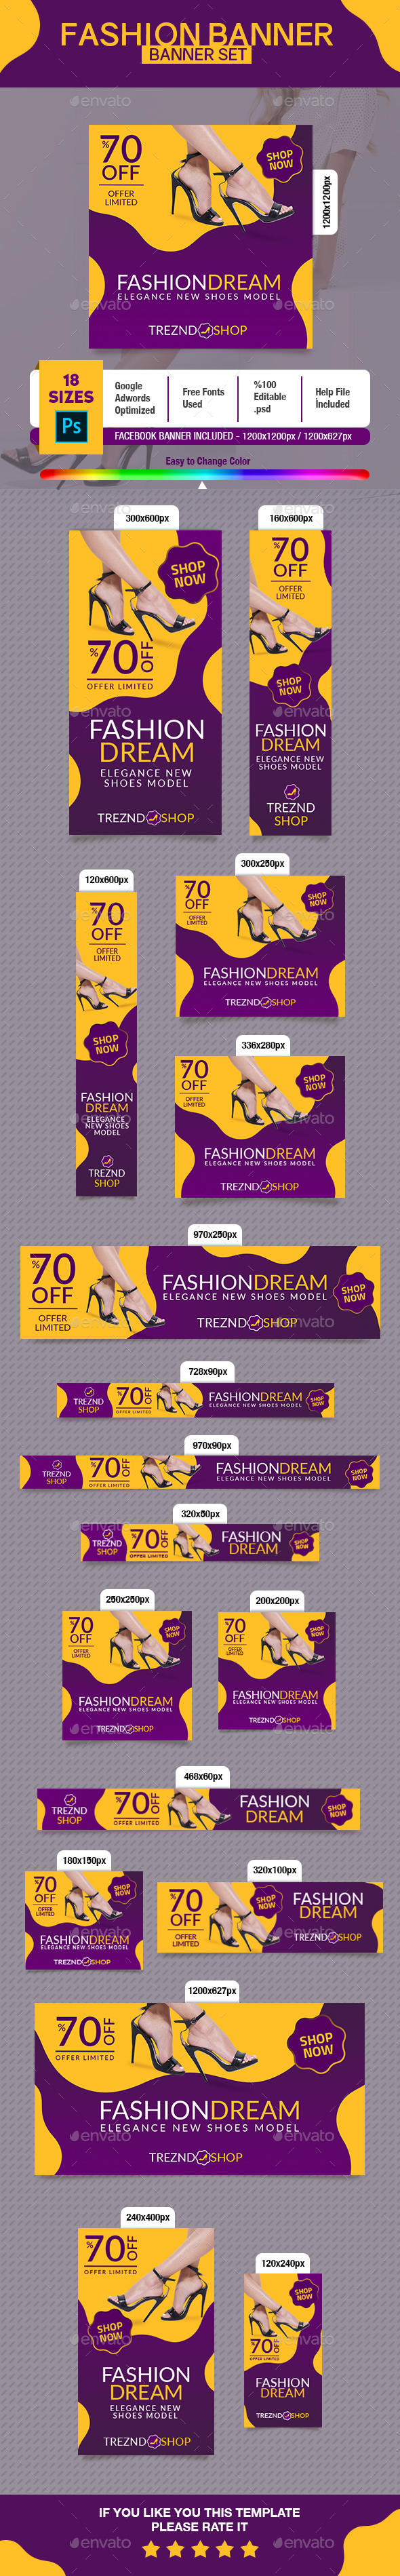 Fashion Shoes Banner - Banners & Ads Web Elements